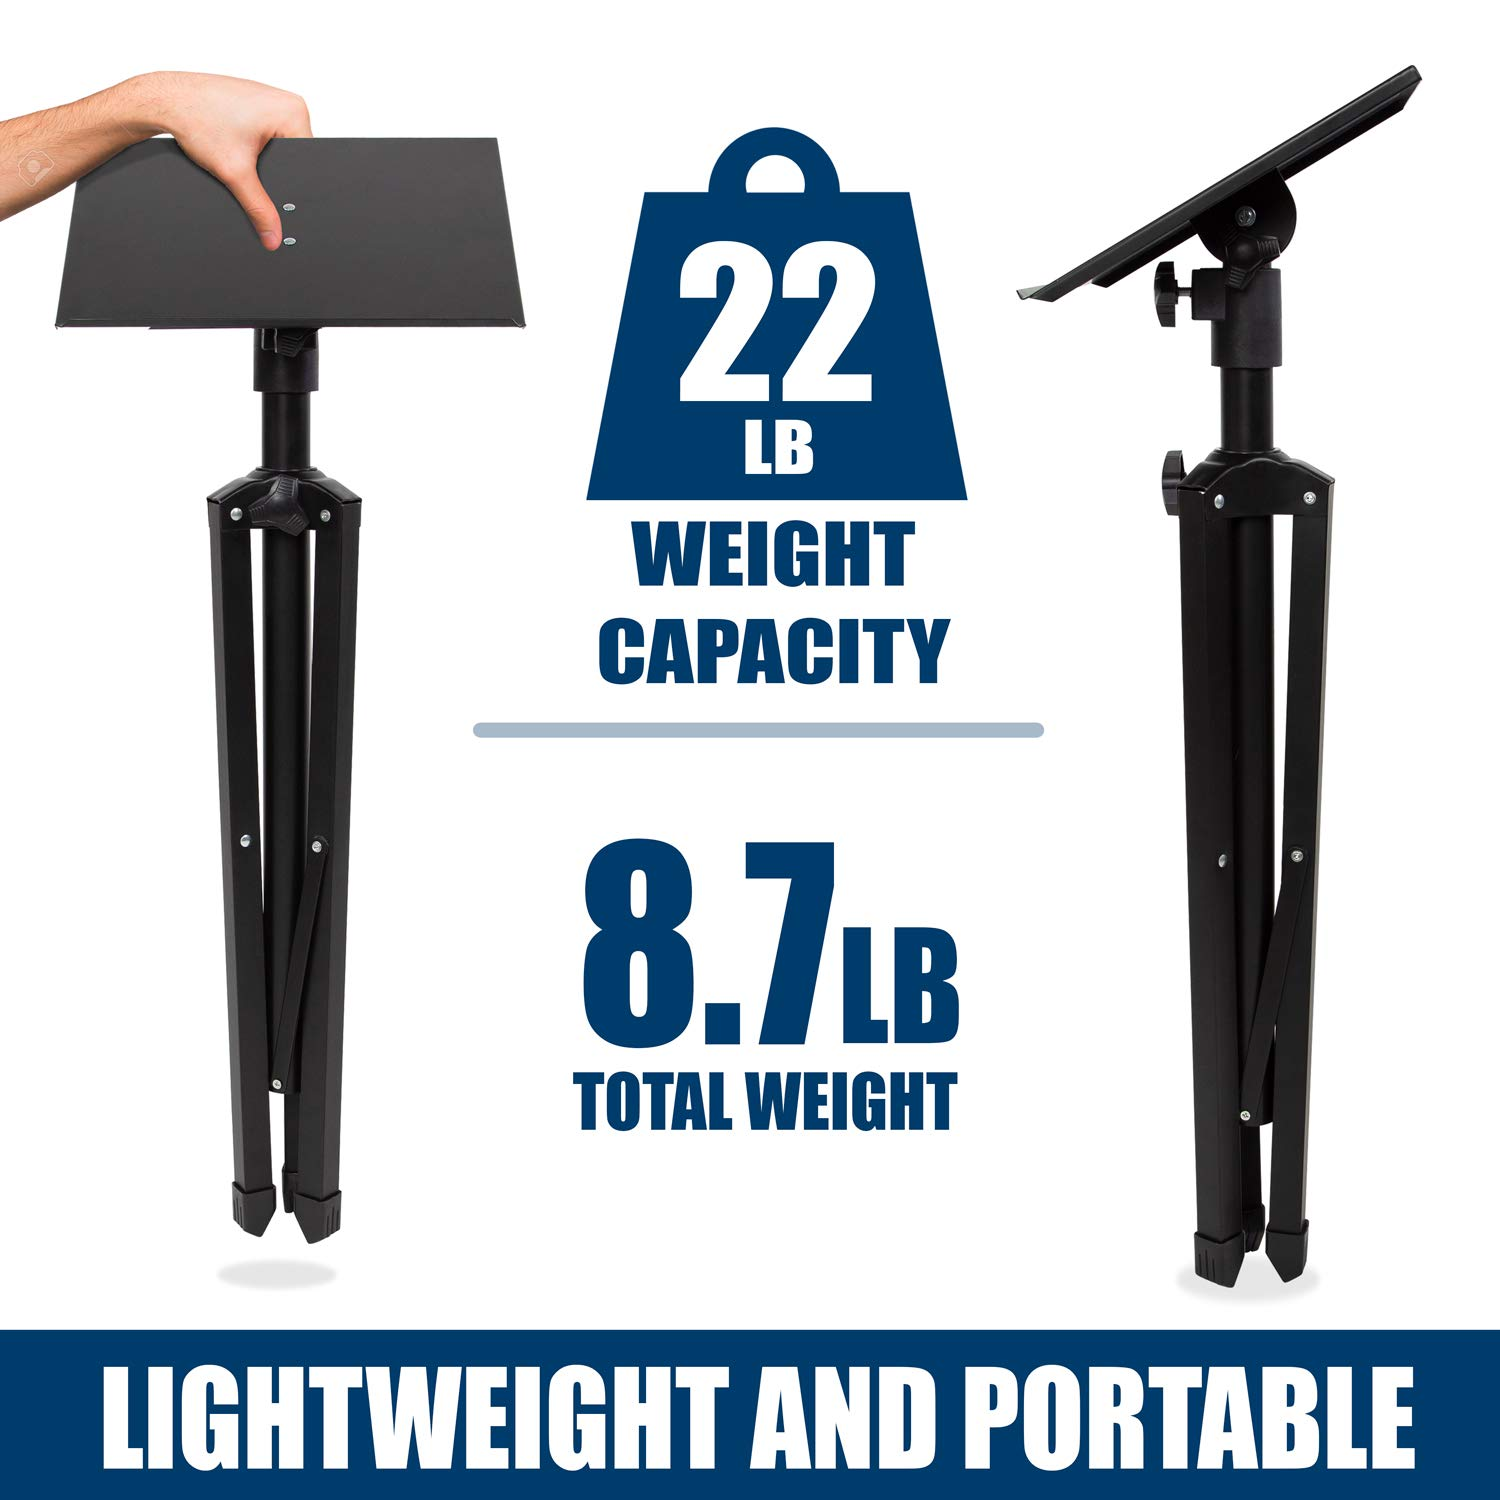 Mount-It! Tripod Projector Stand, Adjustable DJ Laptop Stand with Height and Tilt Adjustment, Portable Laptop Projector Table with Steel Tripod Base and Tray, Black by Mount-It! (Image #3)